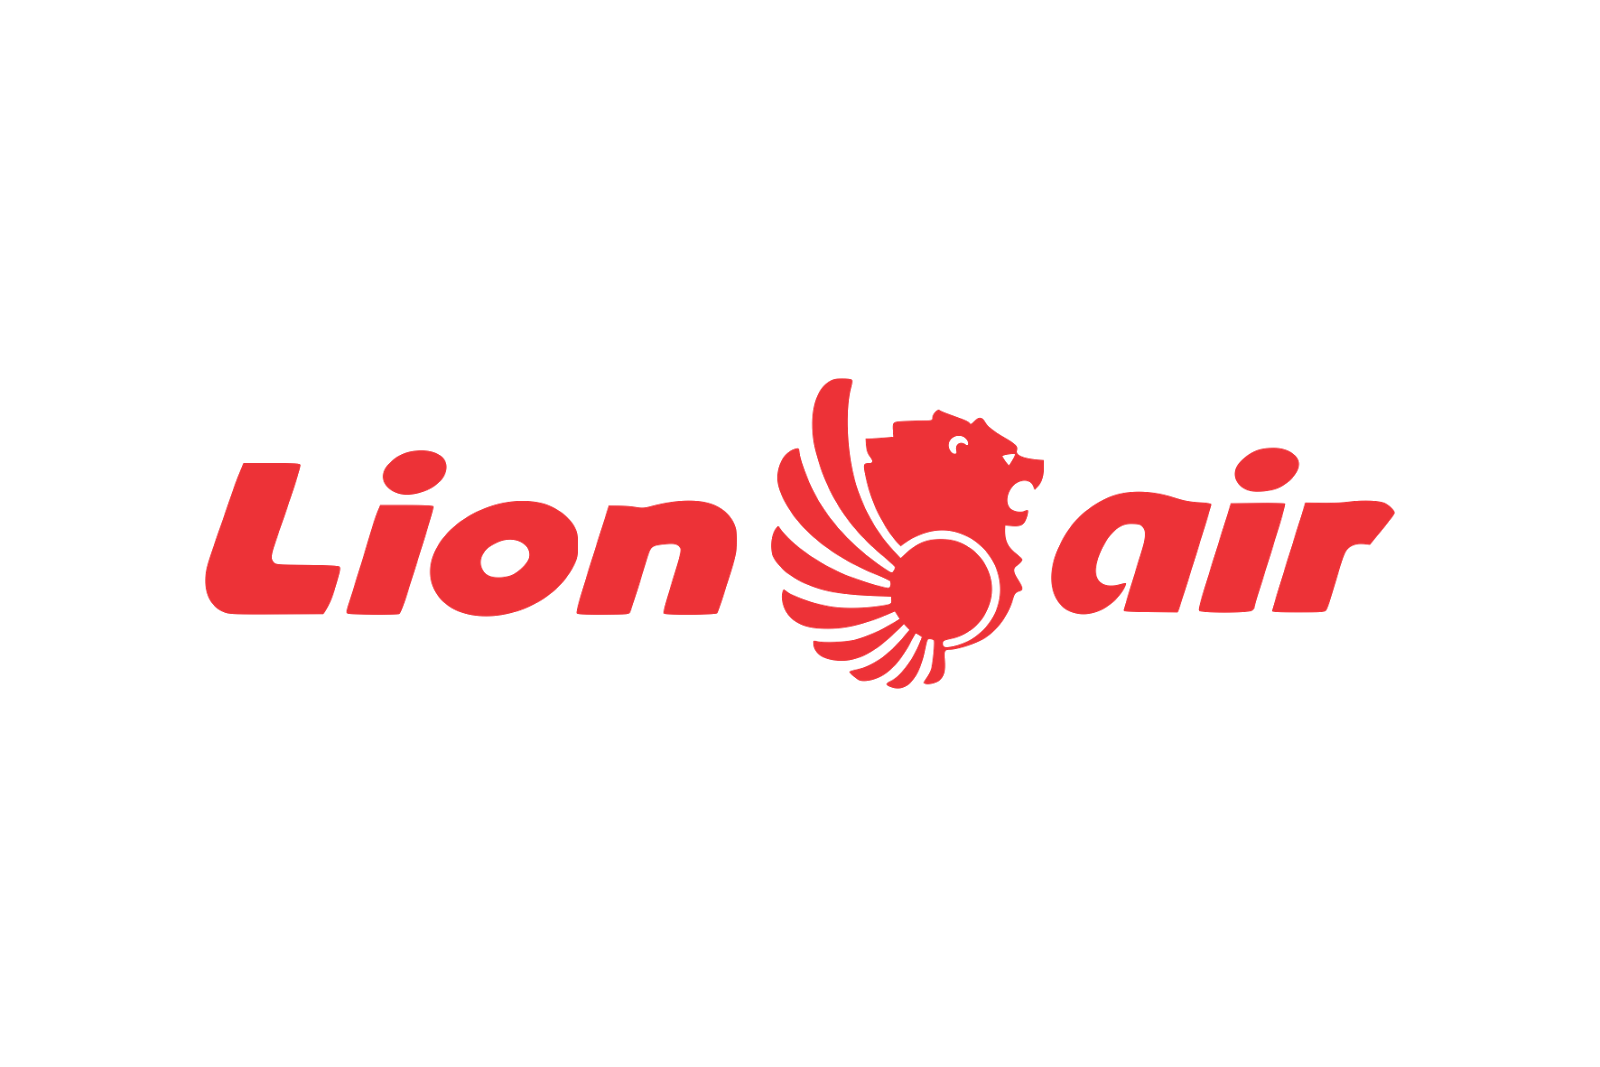 lion air logo logo share express polo lion logo express lion logo shirts